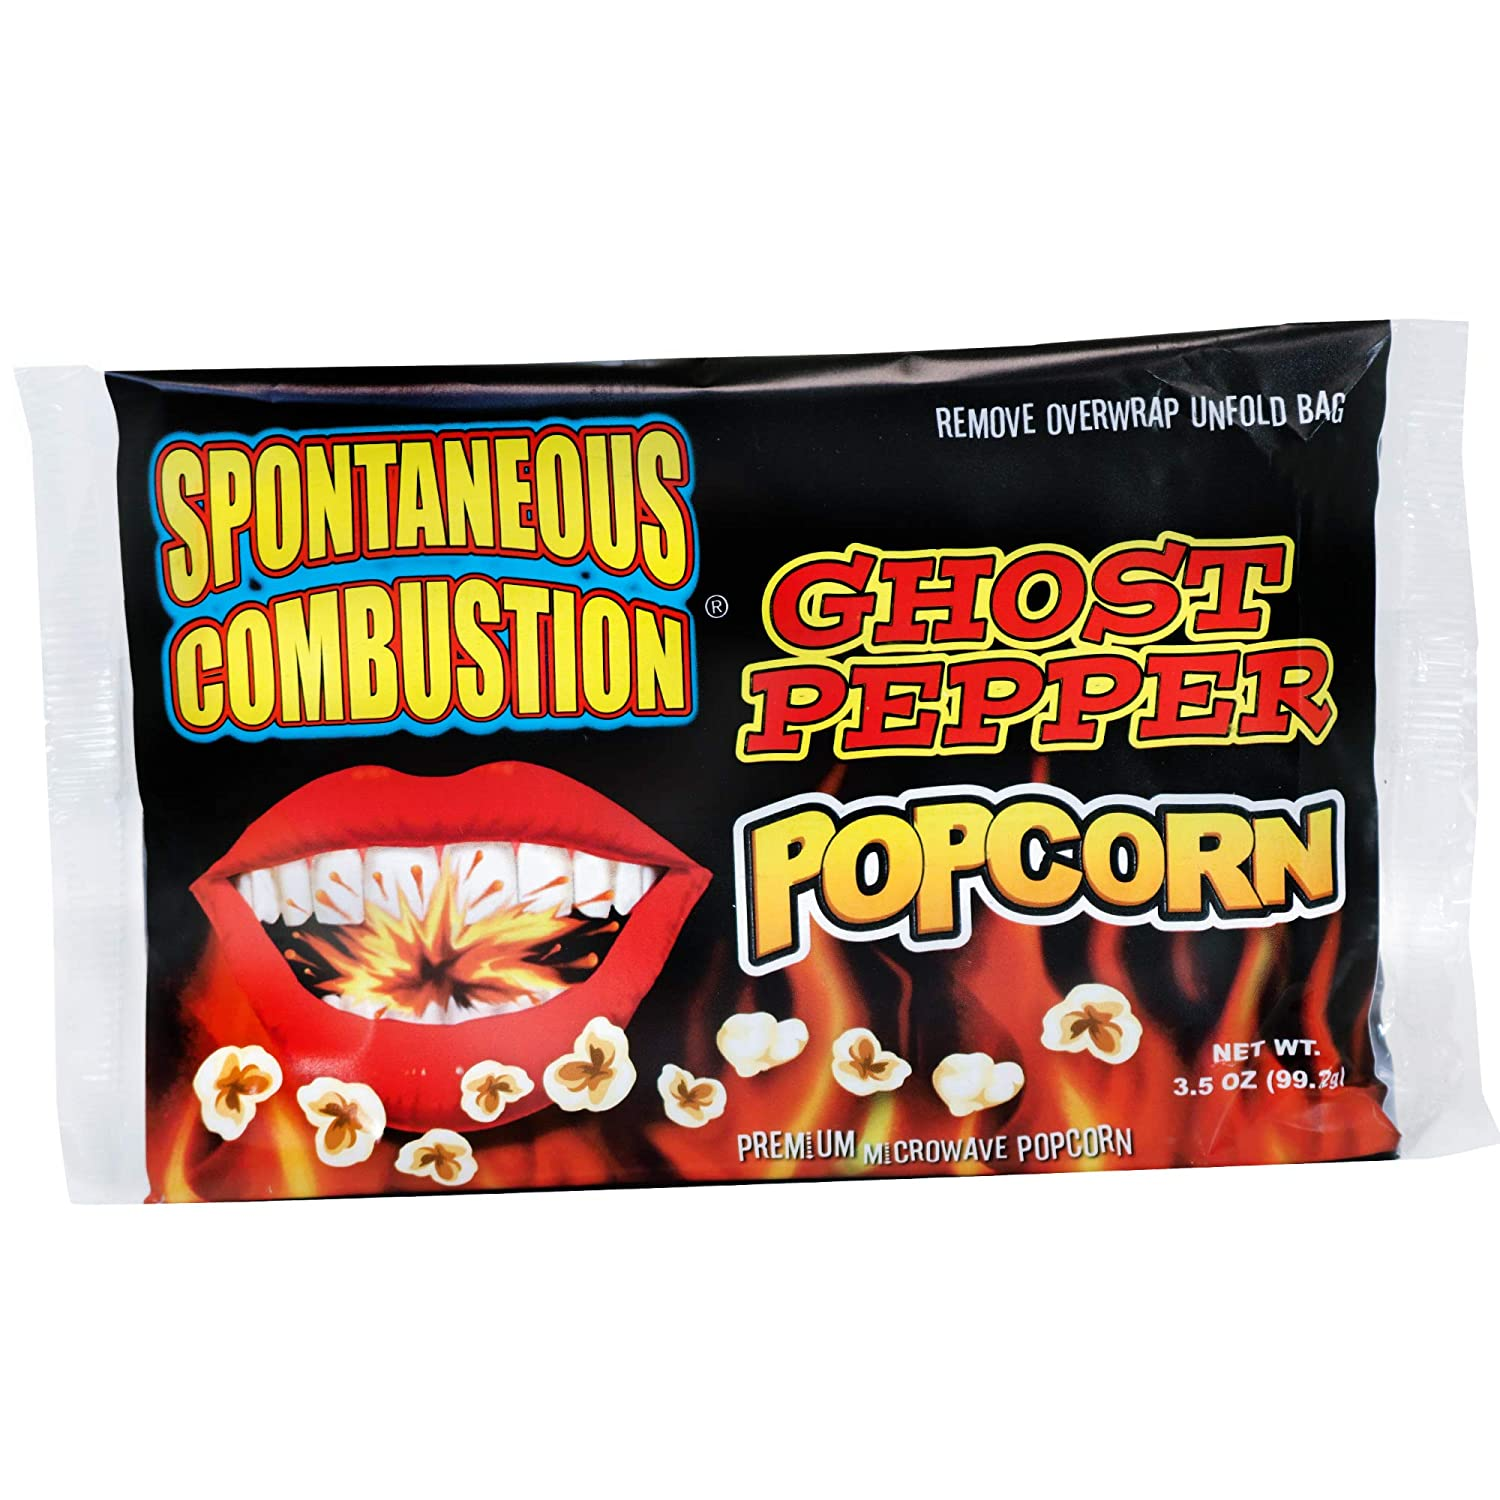 Spontaneous Combustion Spasm price Ghost Pepper Microwave Lowest price challenge Popcorn P - Bags 6